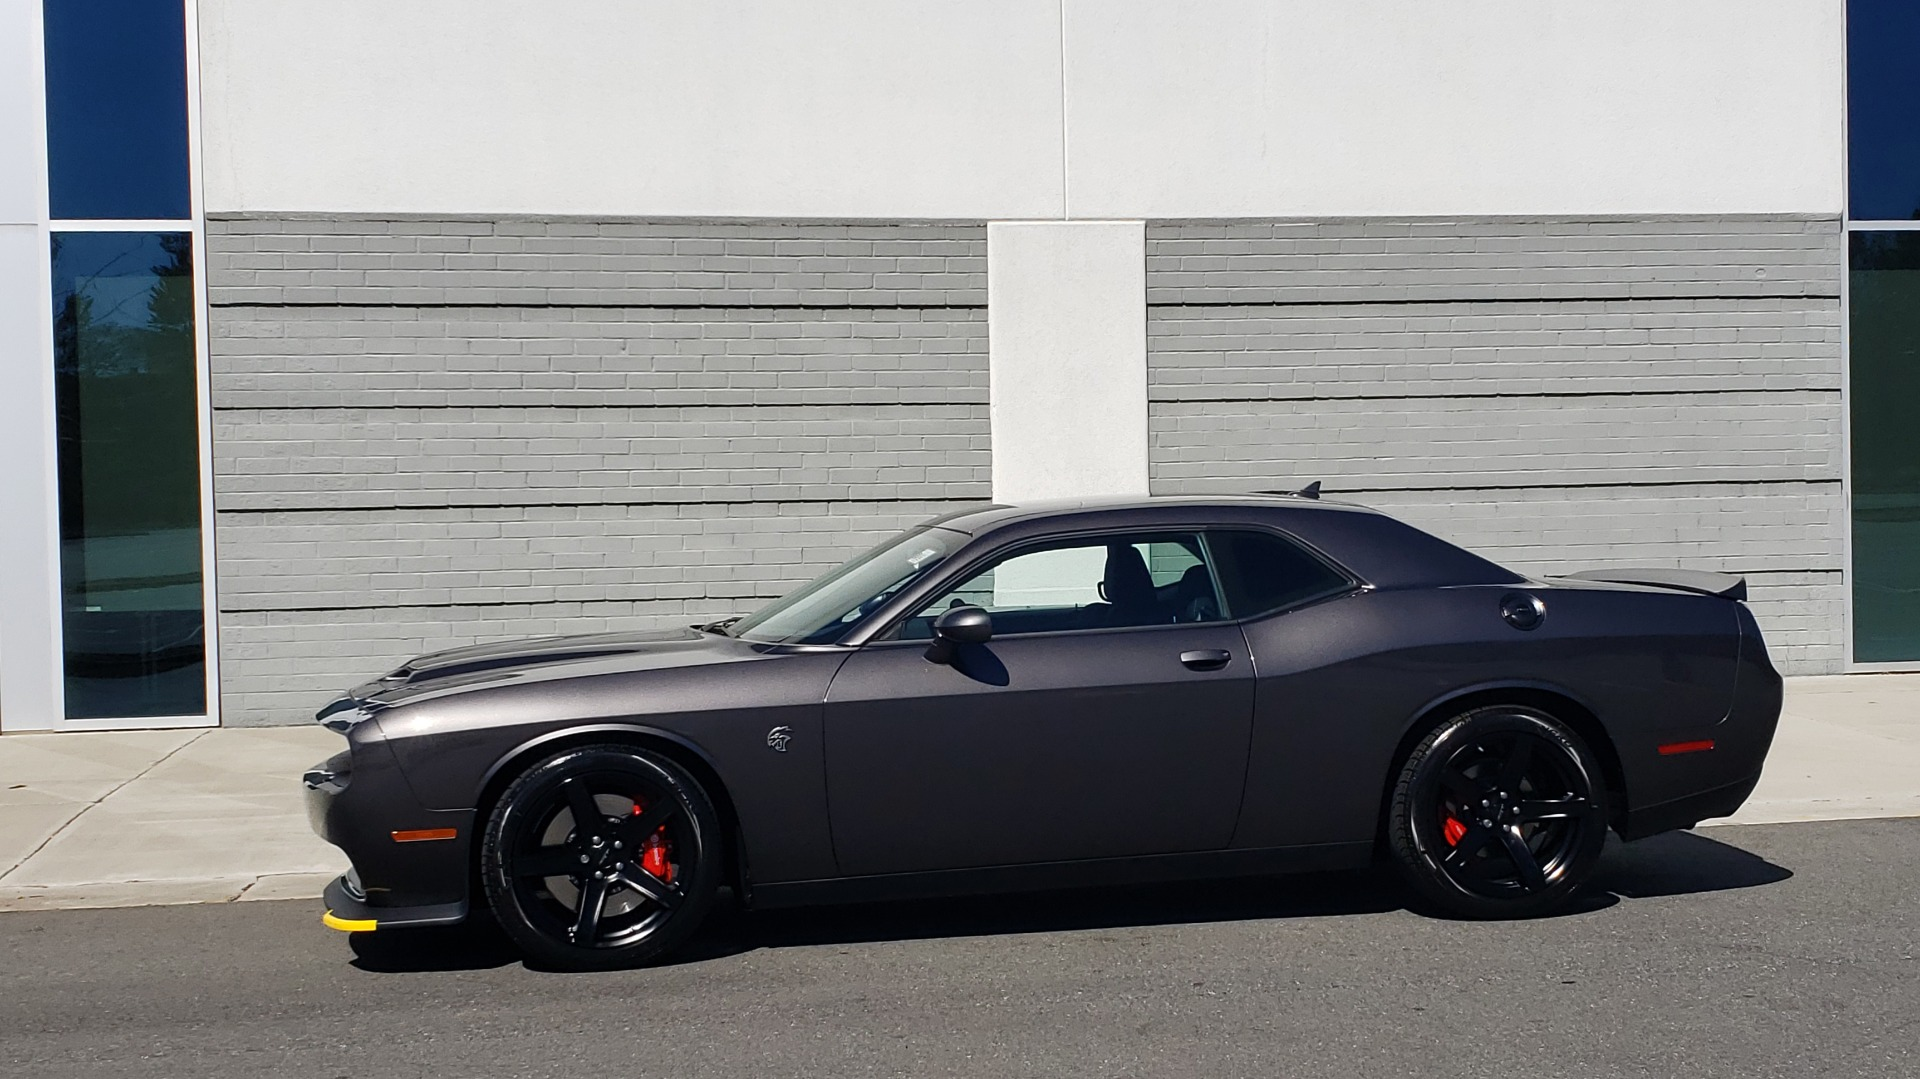 Used 2020 Dodge CHALLENGER SRT HELLCAT (717HP) / NAV / AUTO / CLOTH / REARVIEW / LOW MILES for sale Sold at Formula Imports in Charlotte NC 28227 3